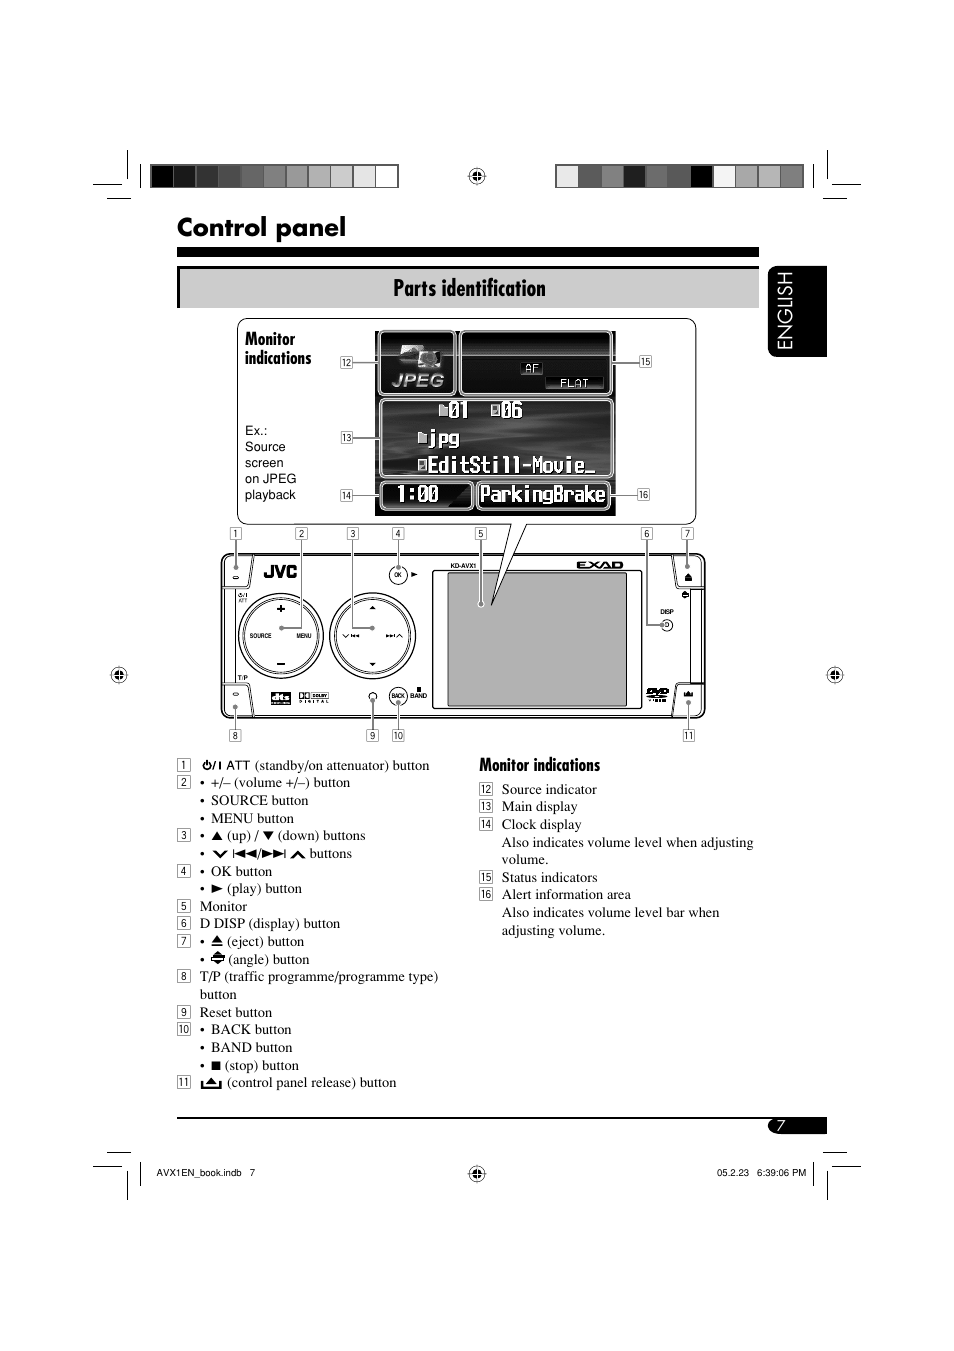 Jvc Kd Avx1 Wiring Diagram And Schematics Arsenal Control Panel Parts Identification English Monitor Indications User